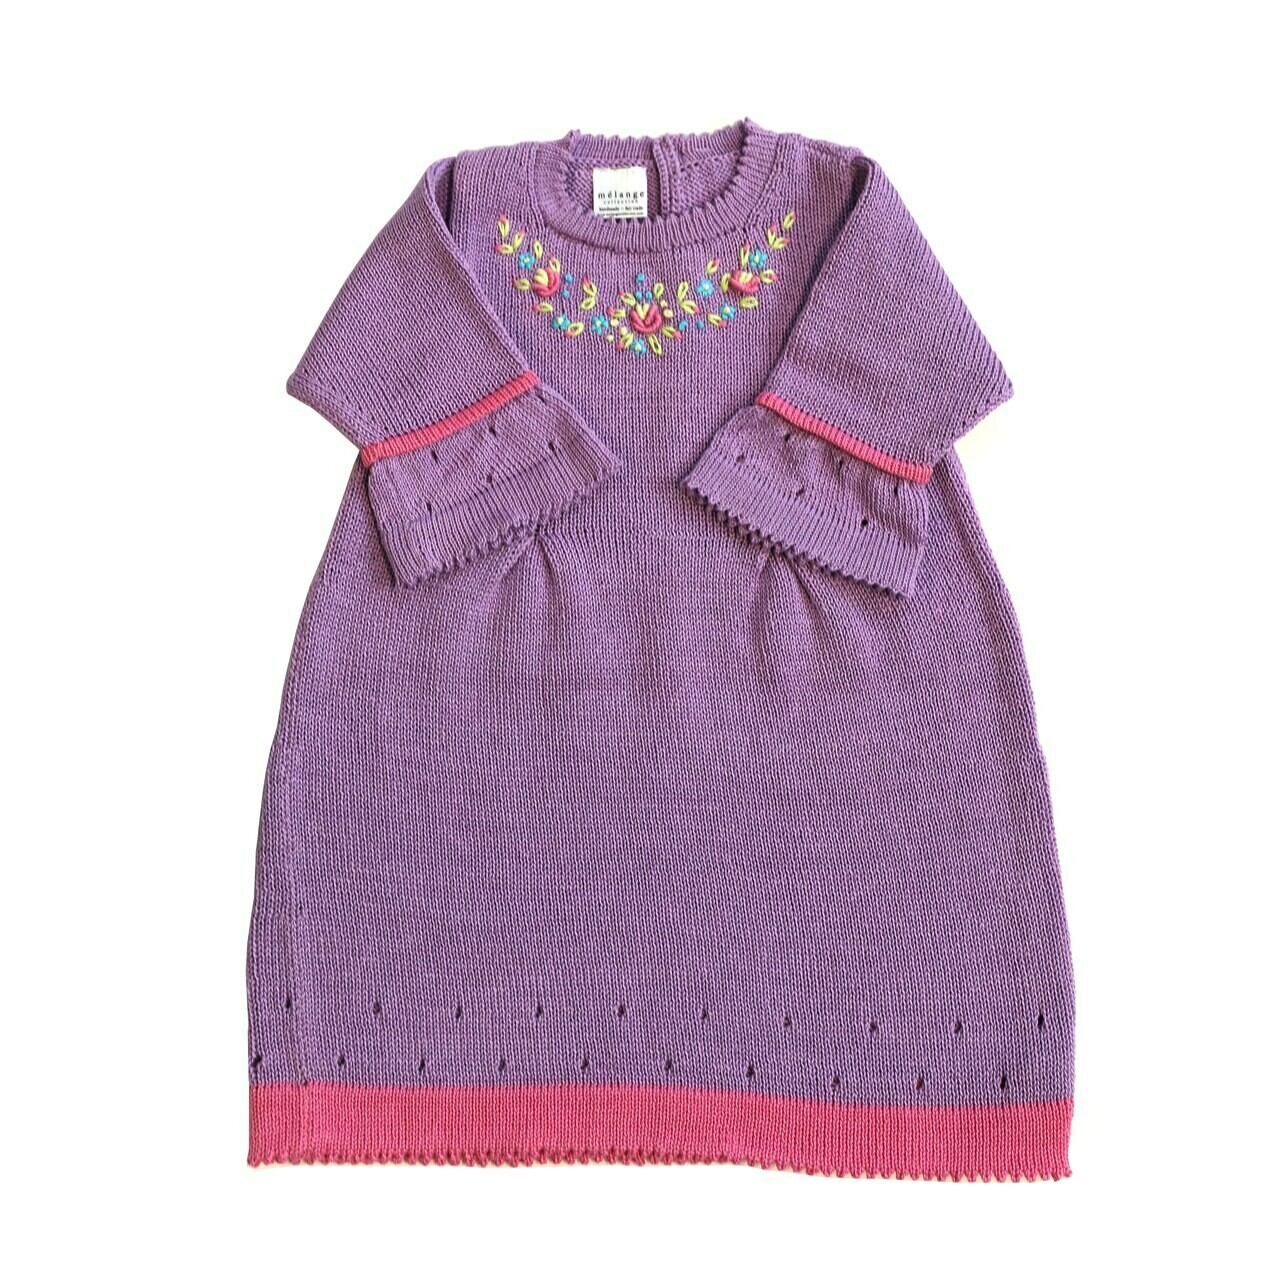 Lilac Easter Dress (24mo)